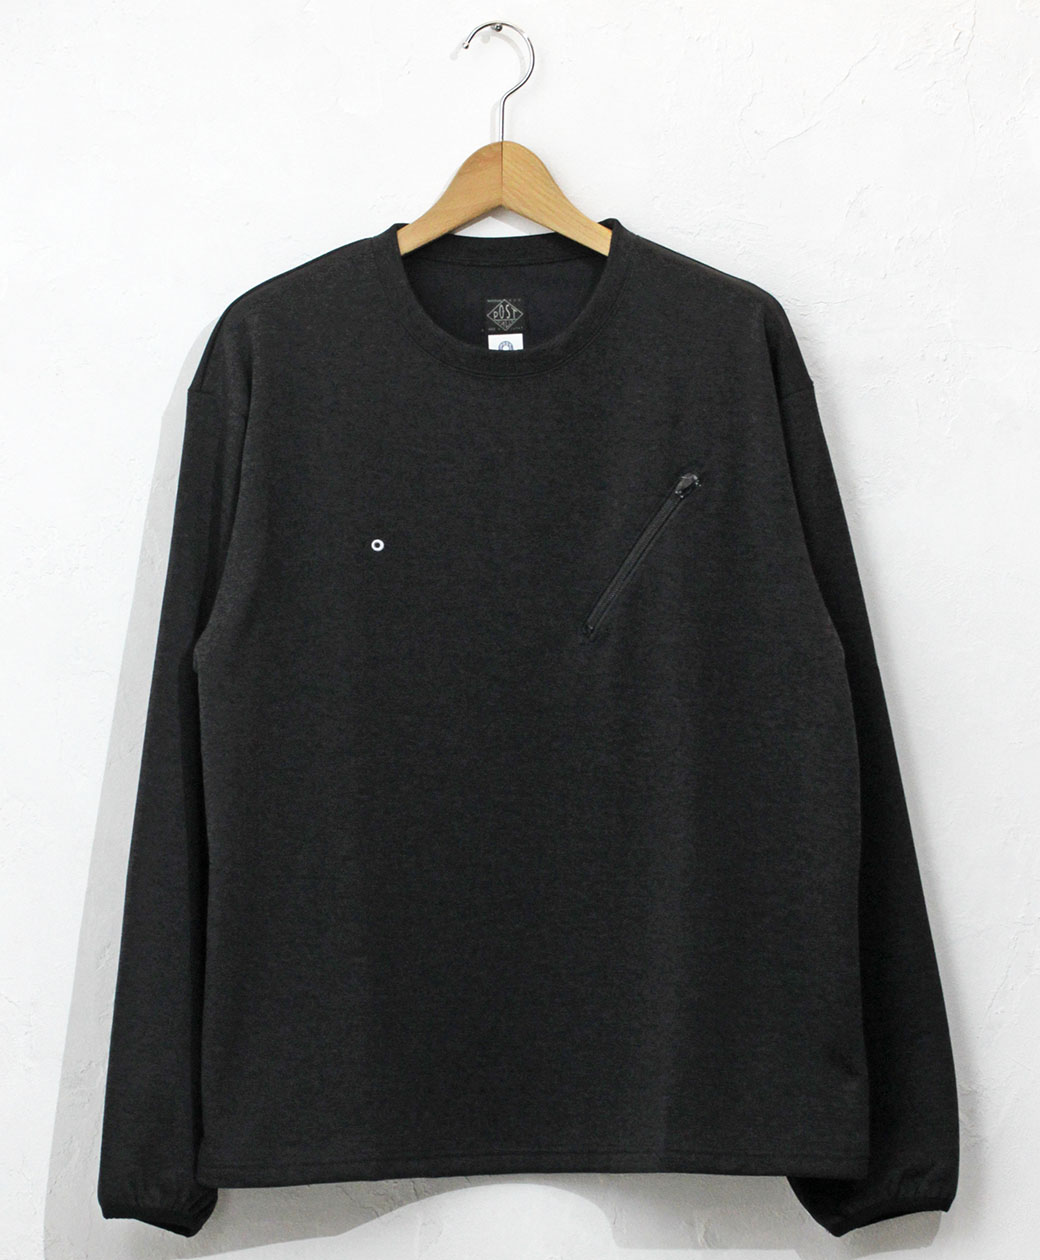 POST O'ALLS #3612 E-Z LS Tee 2 J1 / poly jersey charcoal